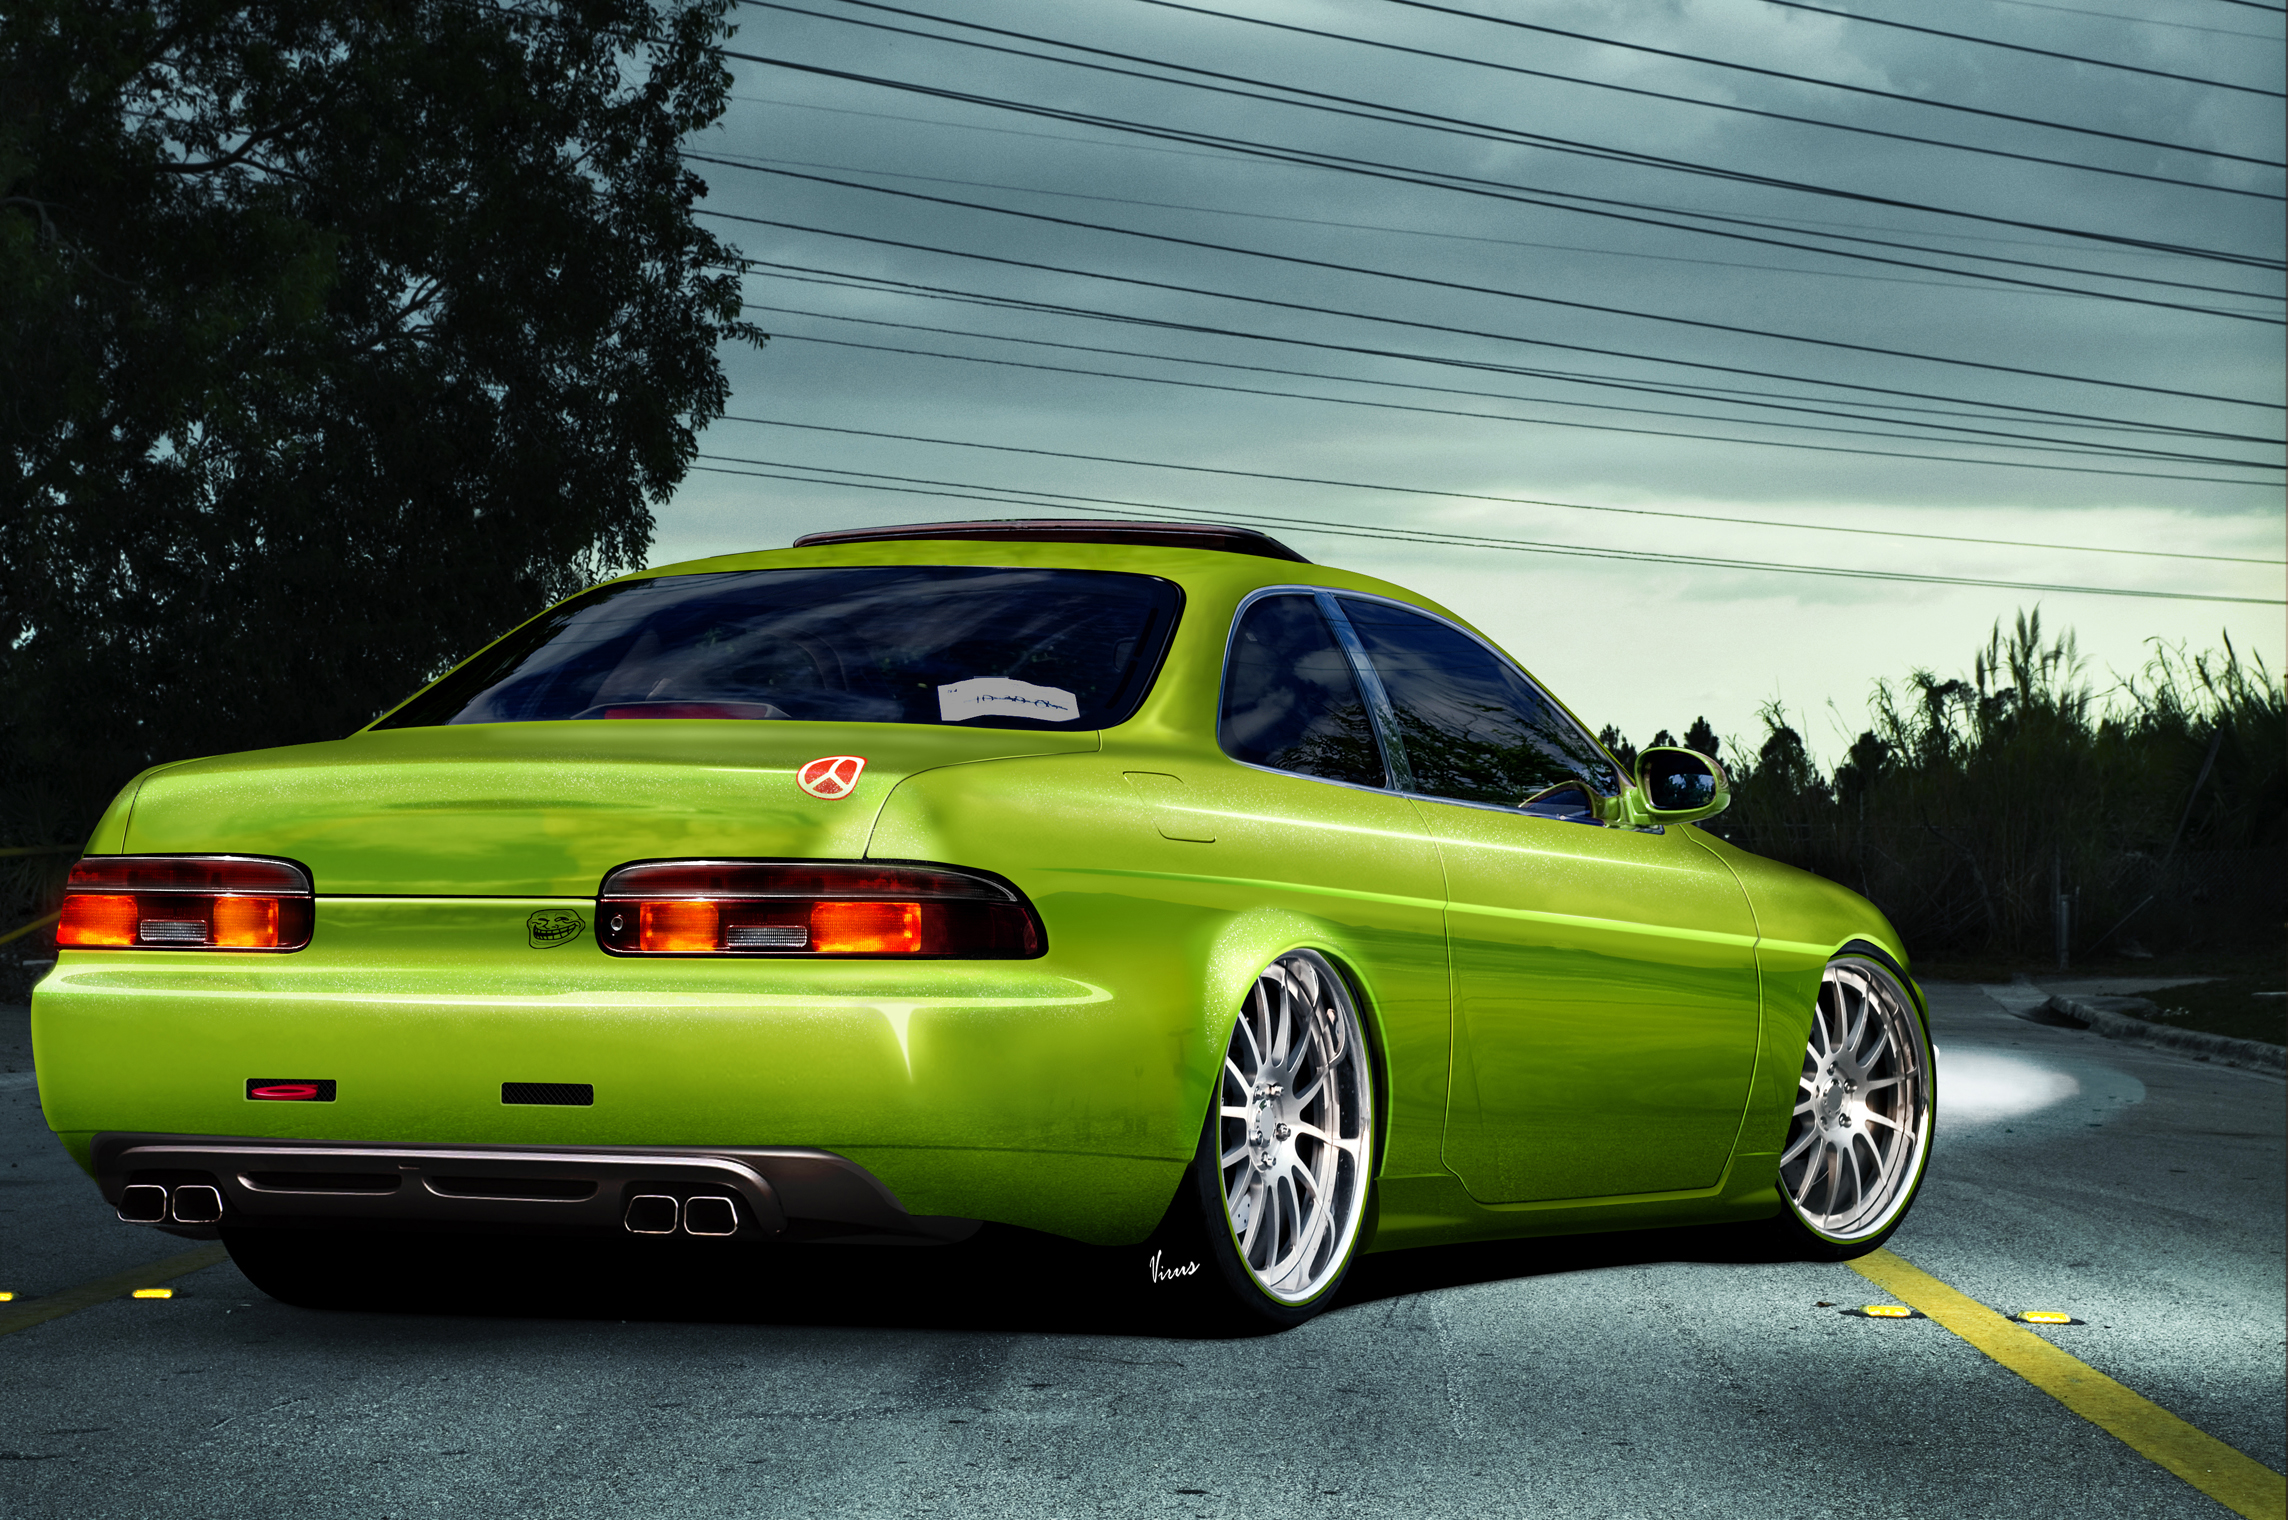 21 best lexus sc300 ideas images on pinterest toyota jdm cars and ideas